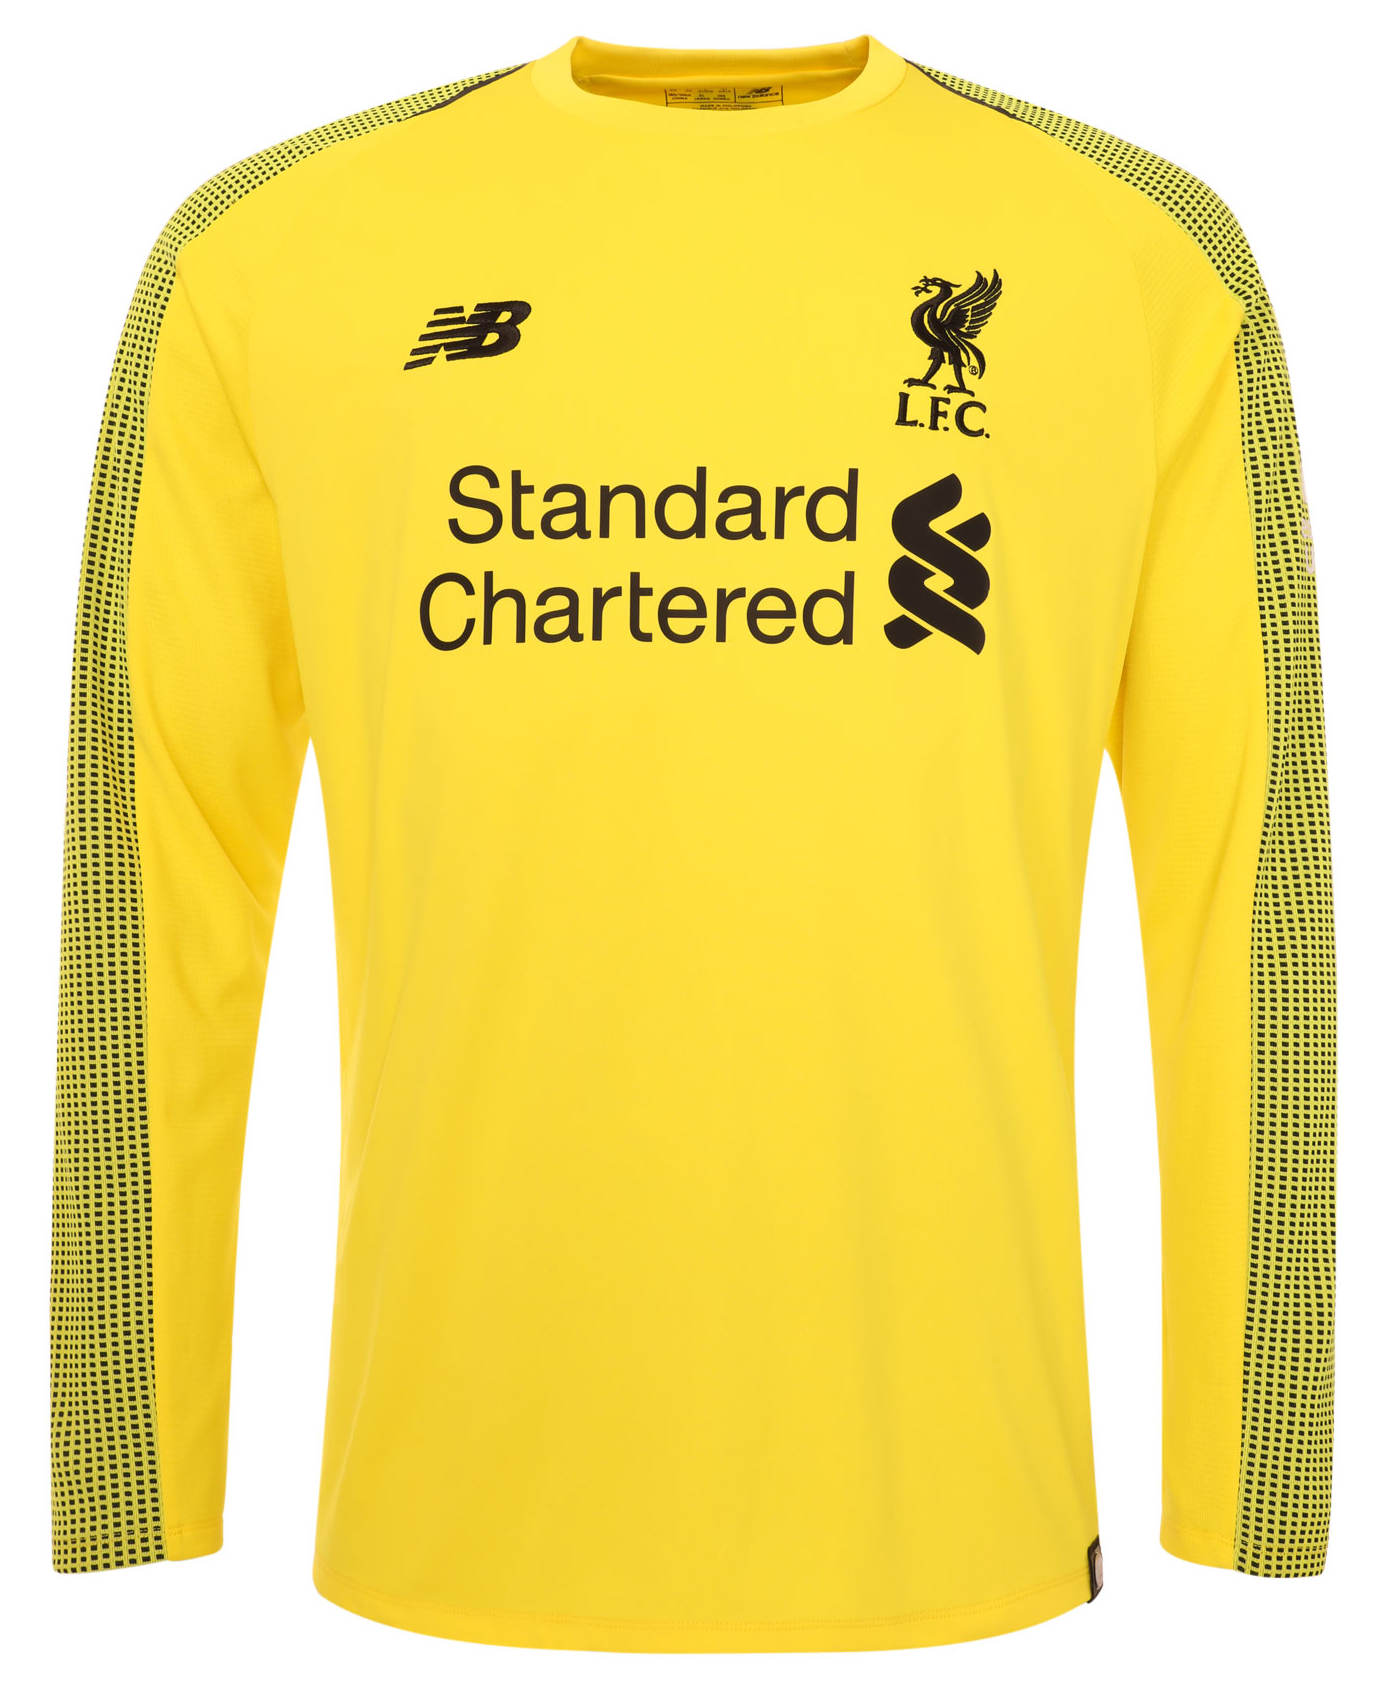 2018-19 LFC home kit revealed - pre-order now - Liverpool FC 284cc36b2